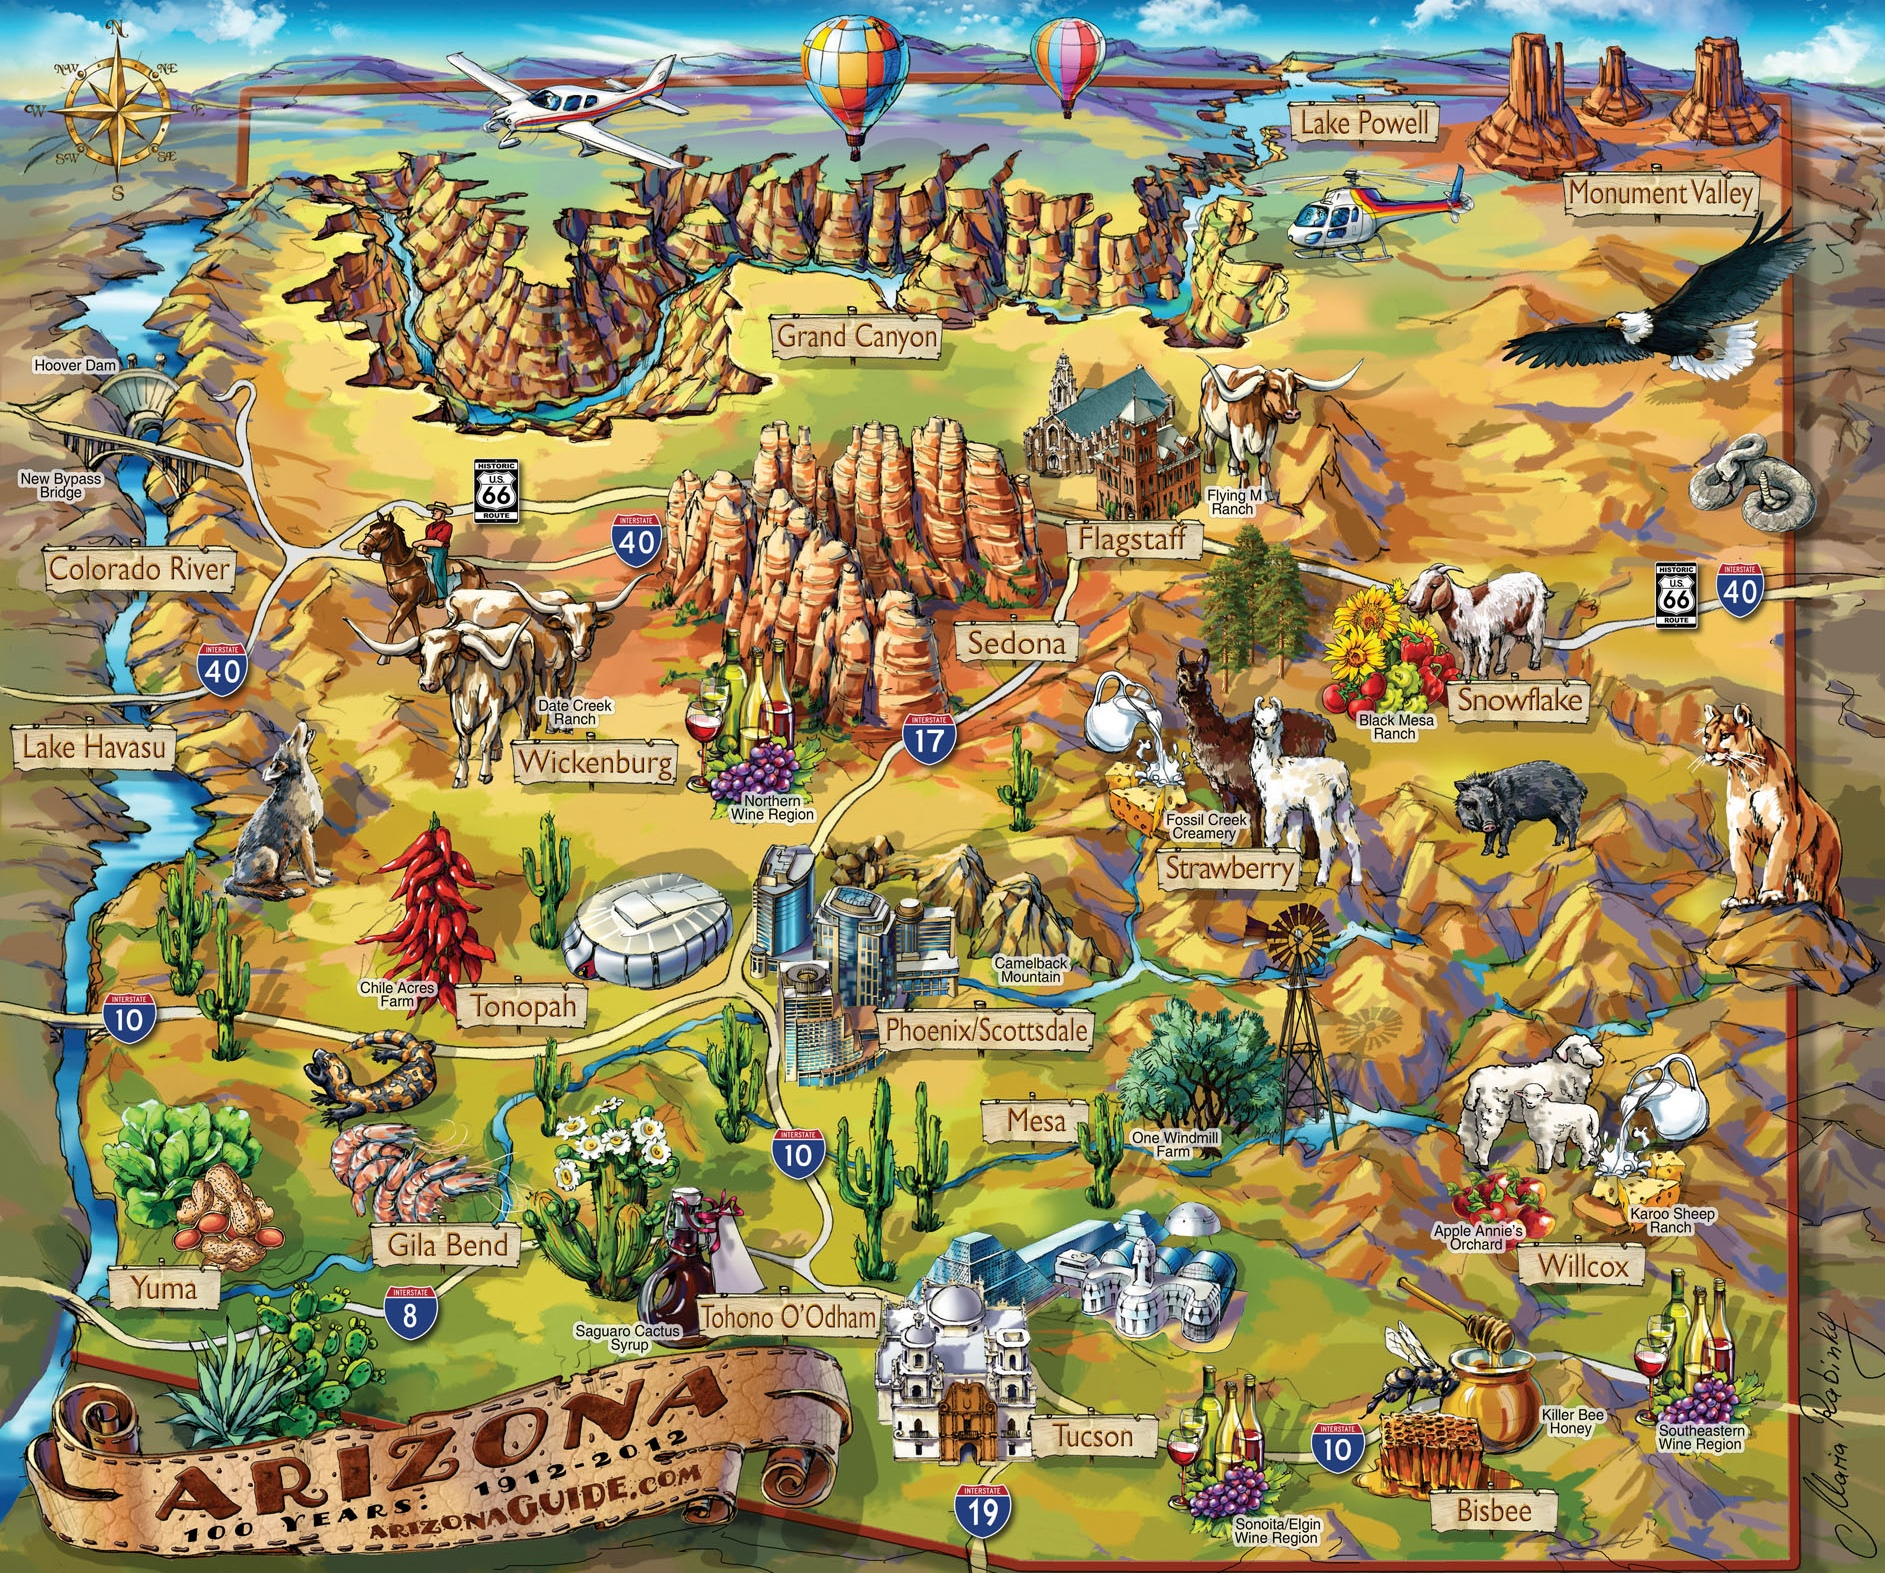 Travel Map Of Arizona Arizona travel illustrated map